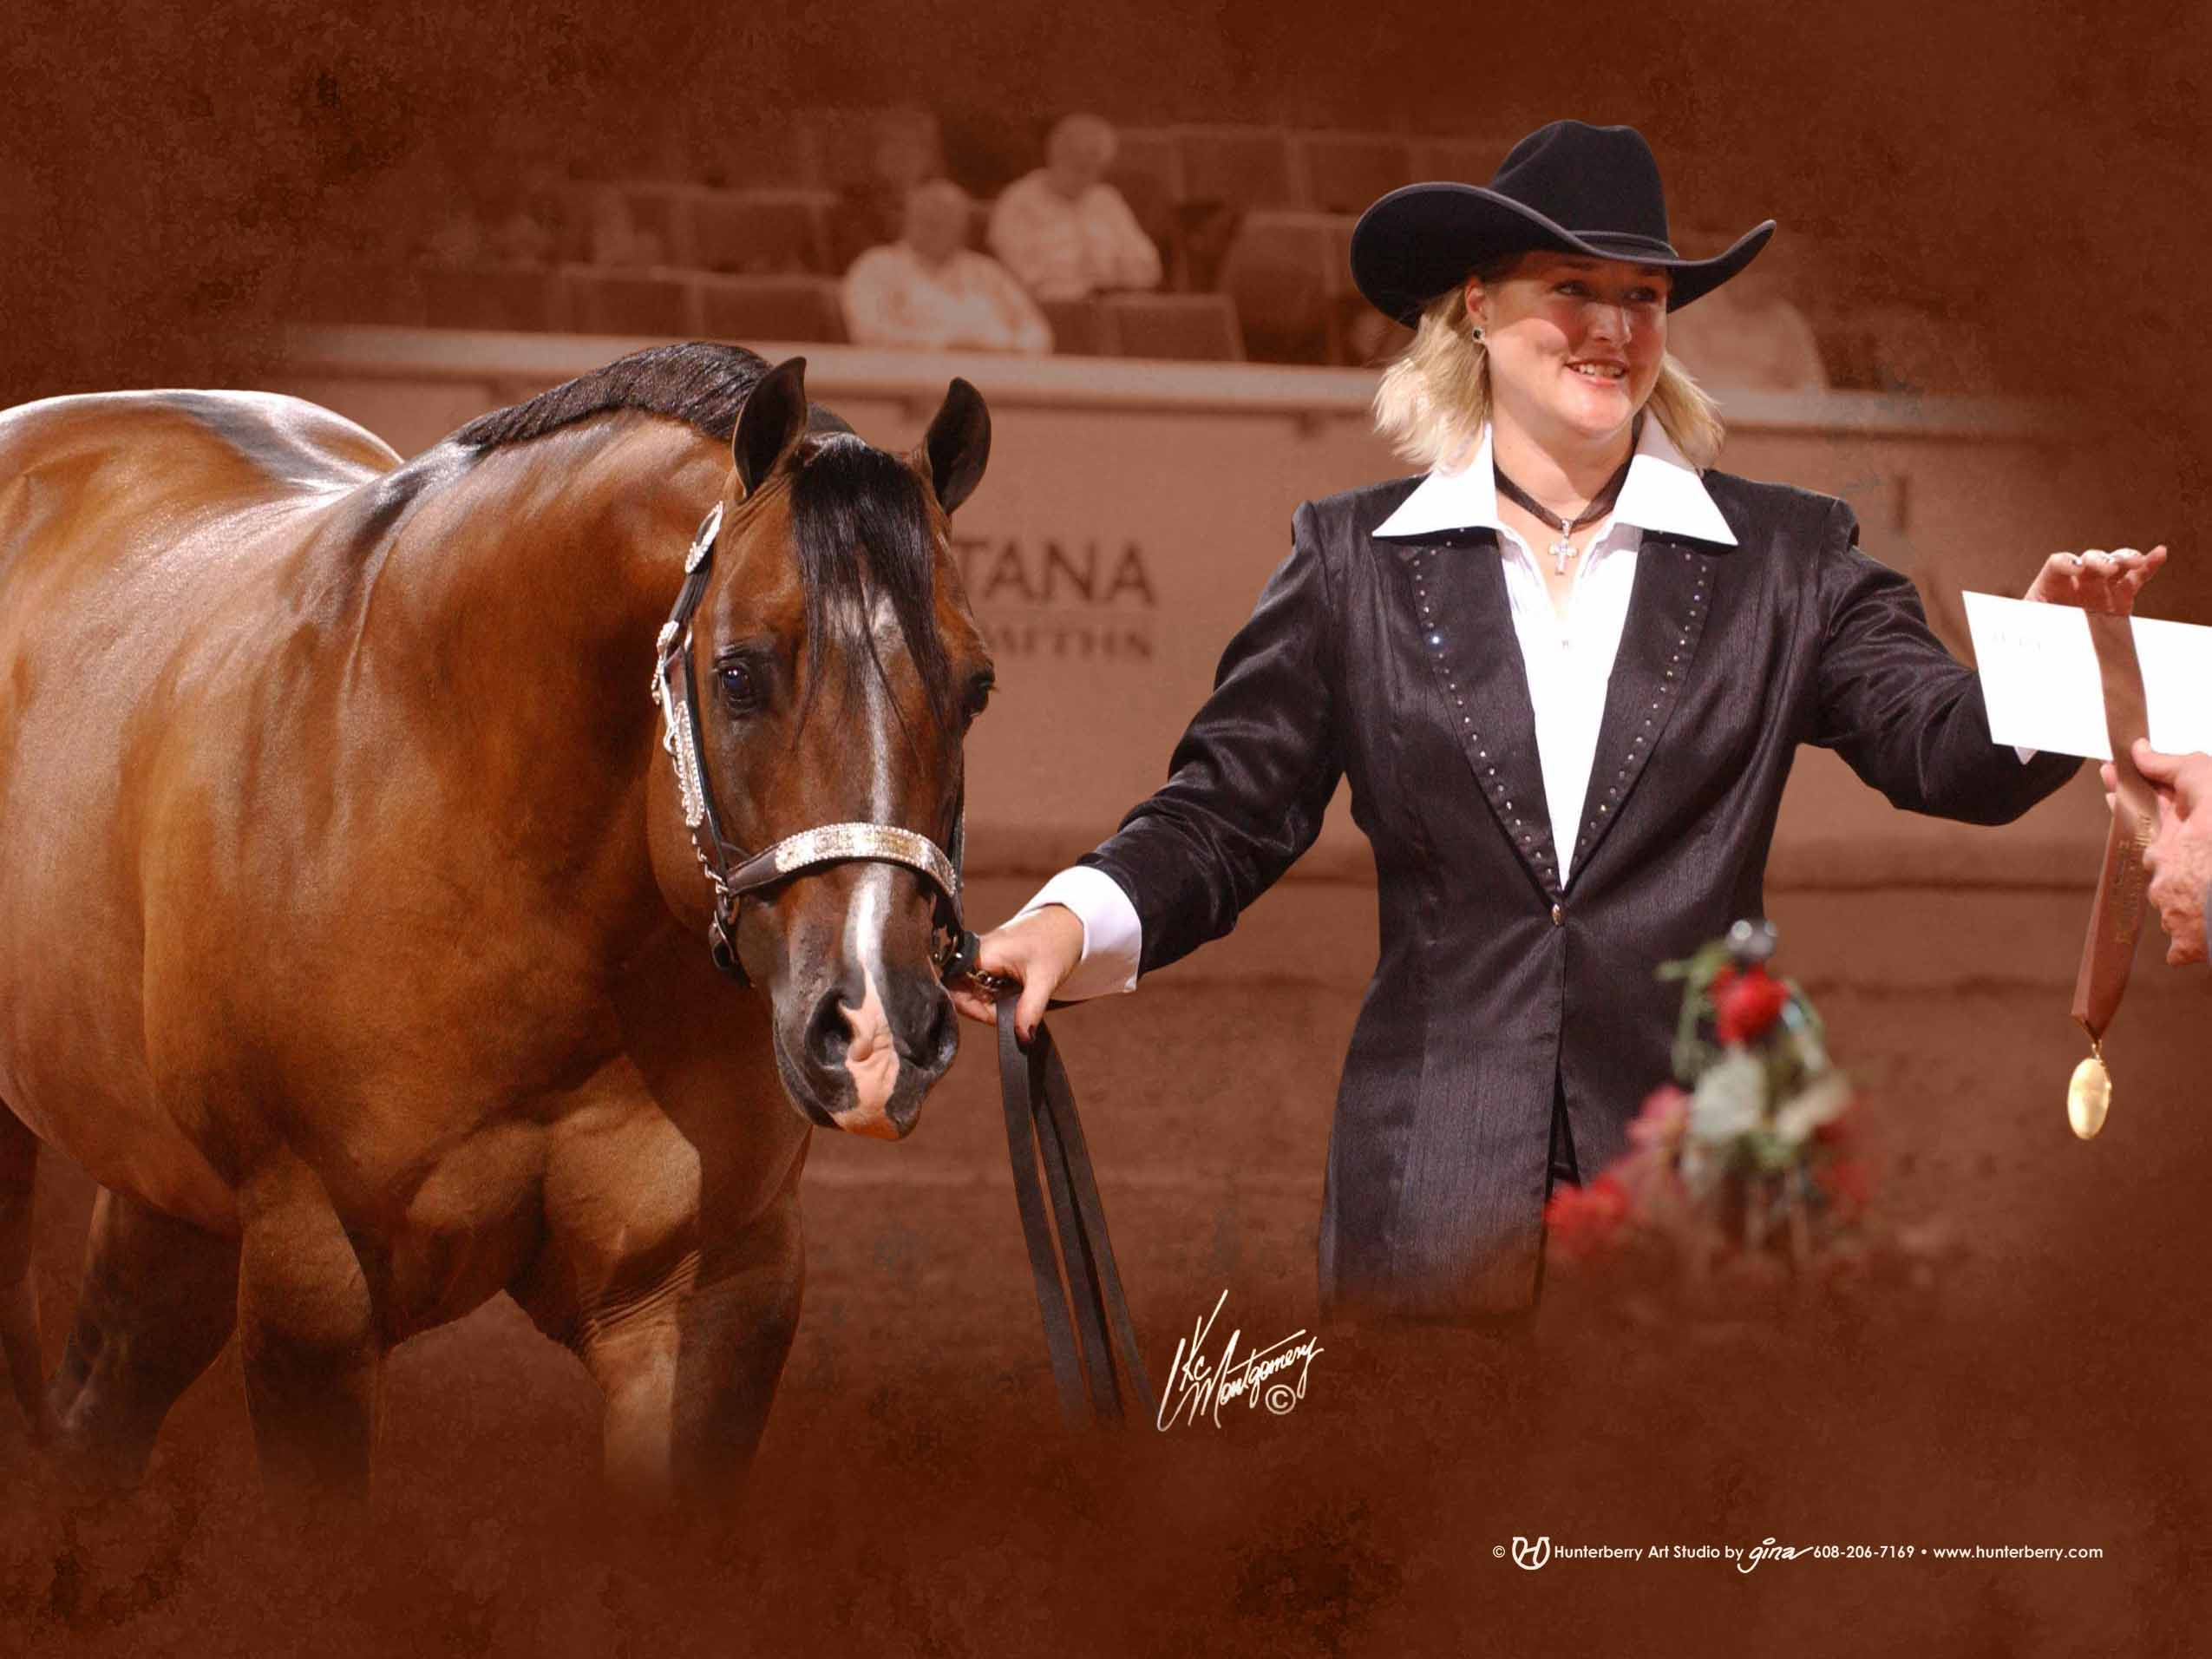 Golden Impact at the 2005 AQHA World Show